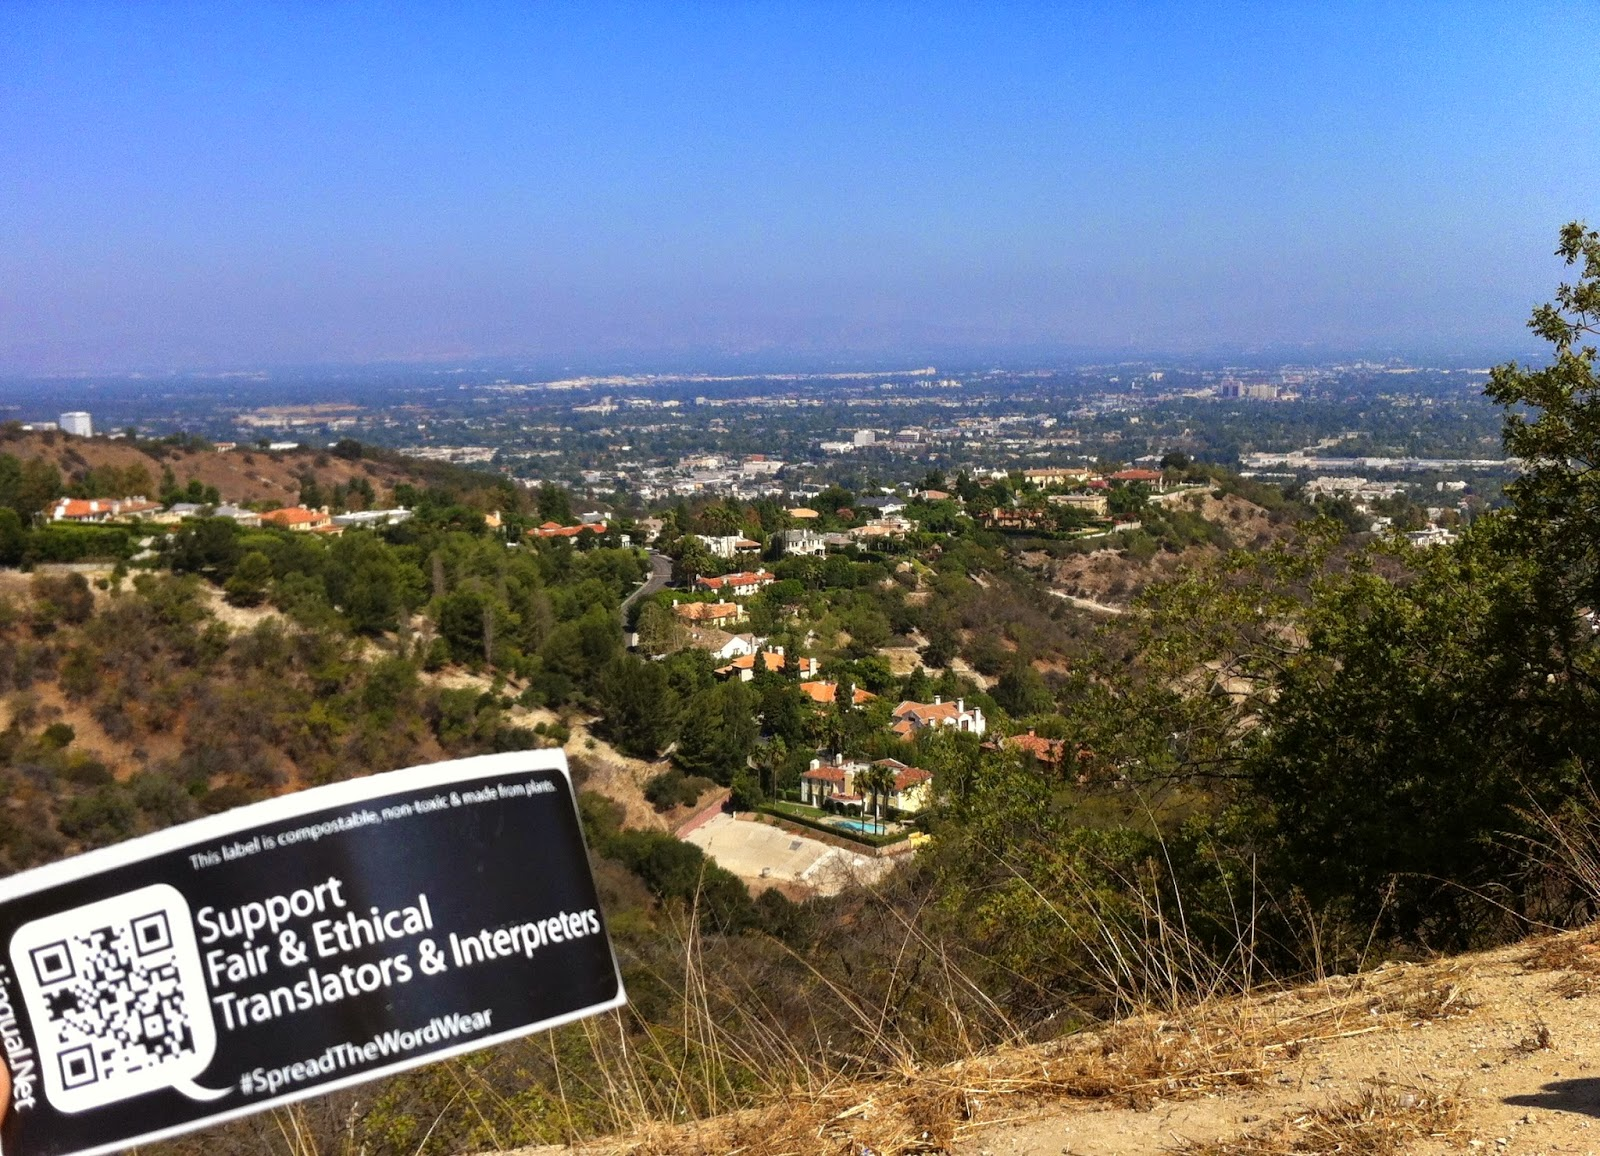 North Hollywood supports fair and ethical translators and interpreters